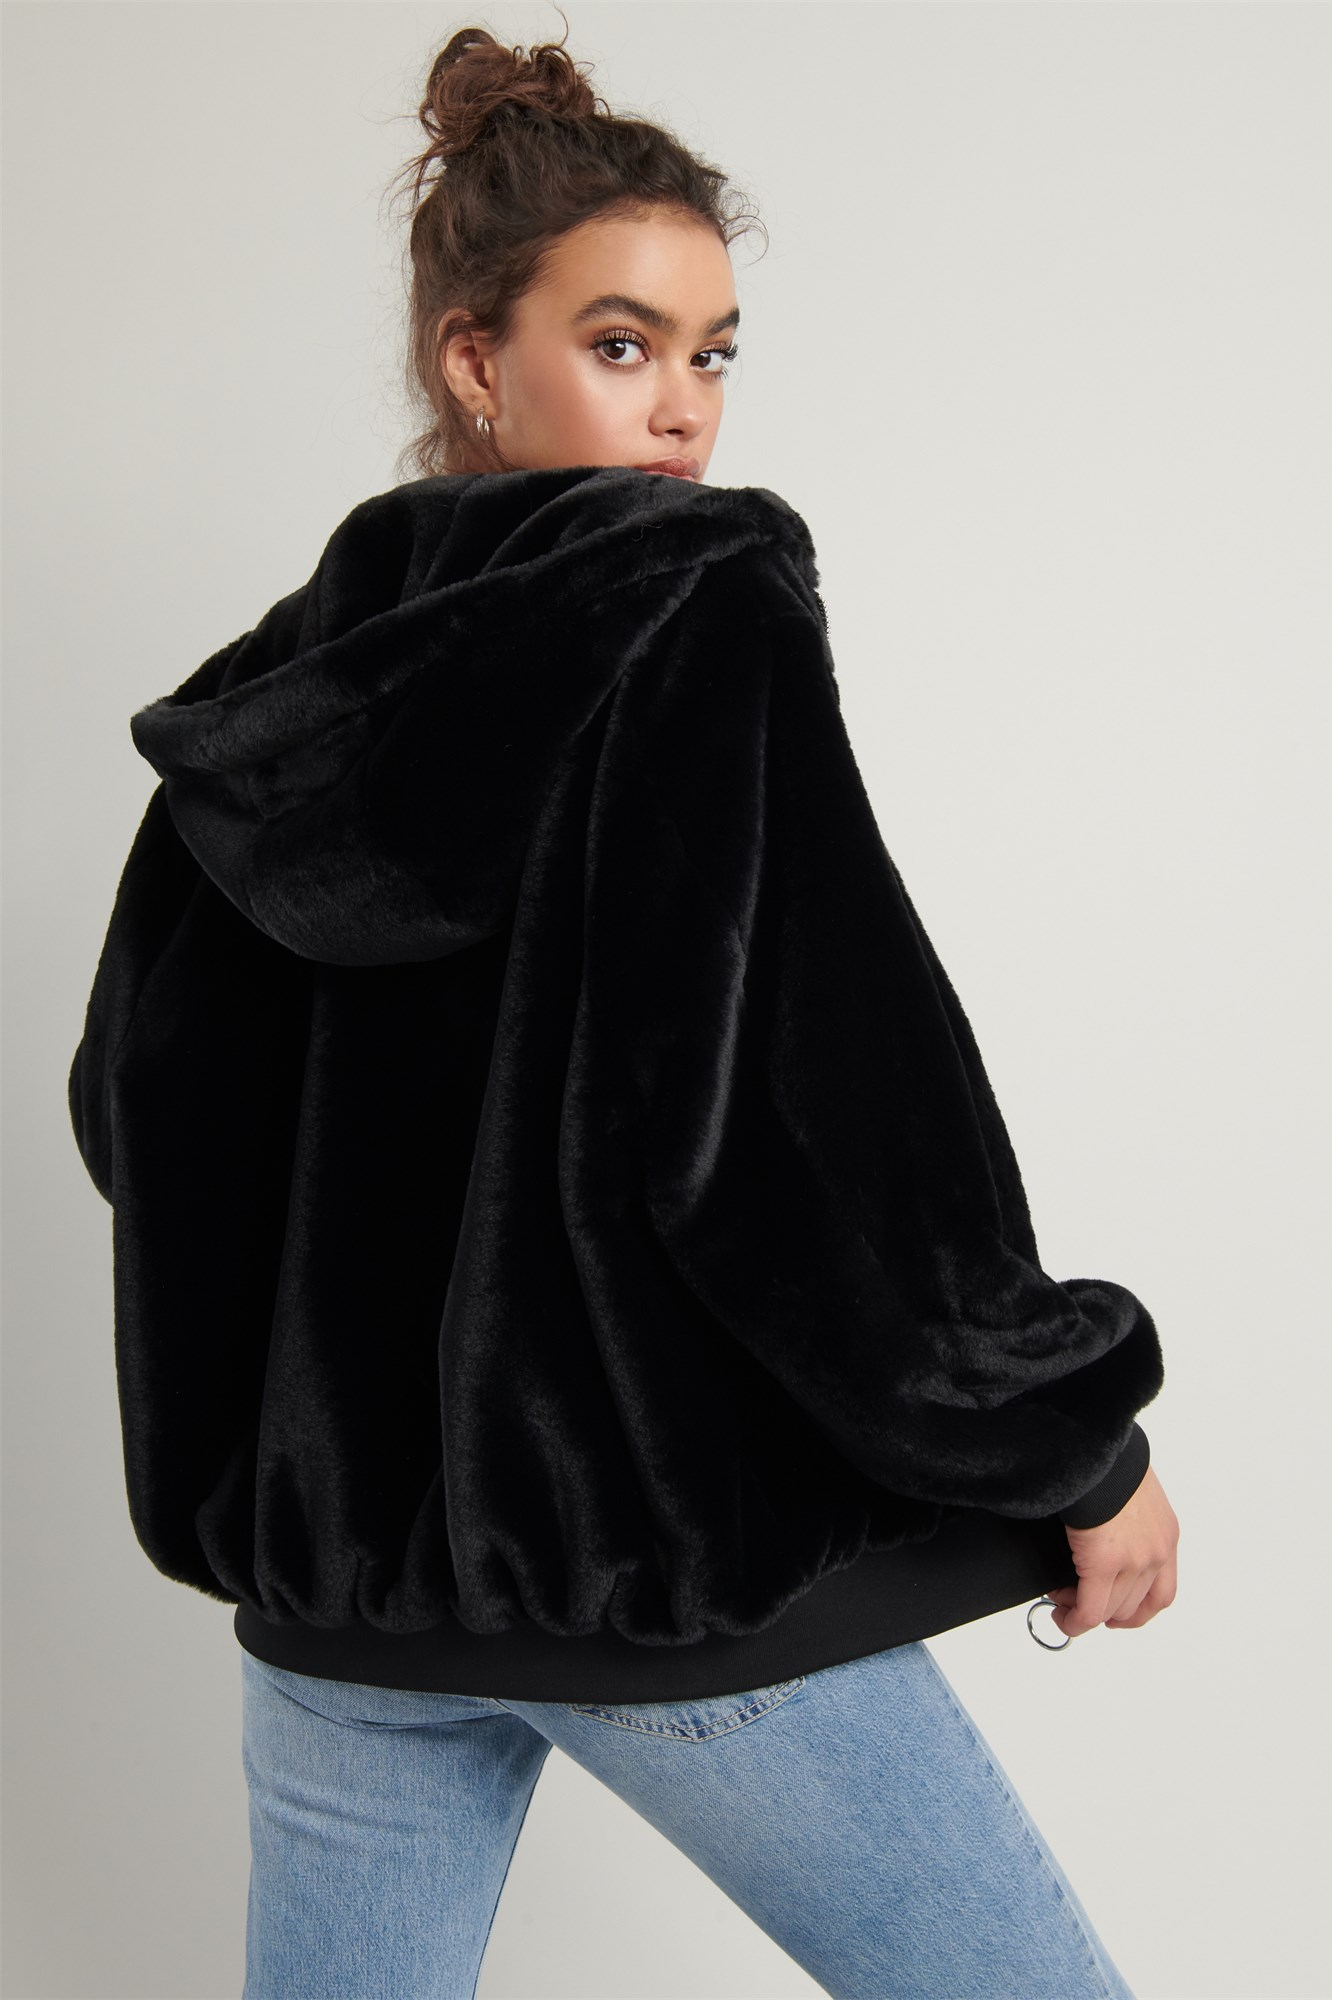 Image 5 of The Two-Faced Reversible Bomber